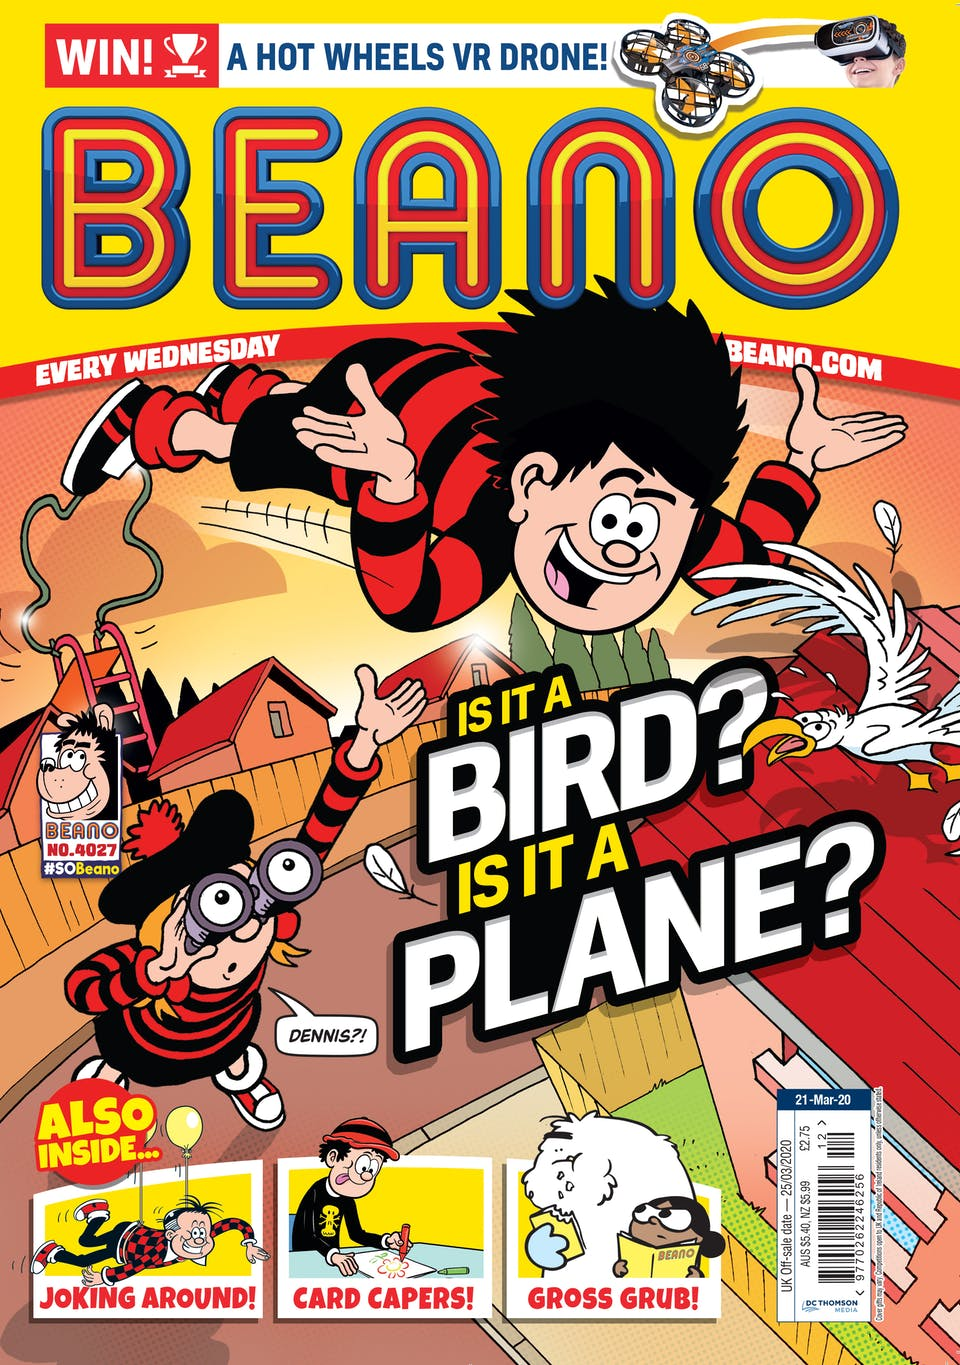 Inside Beano 4027 - Is It A Bird? Is It A Plane?